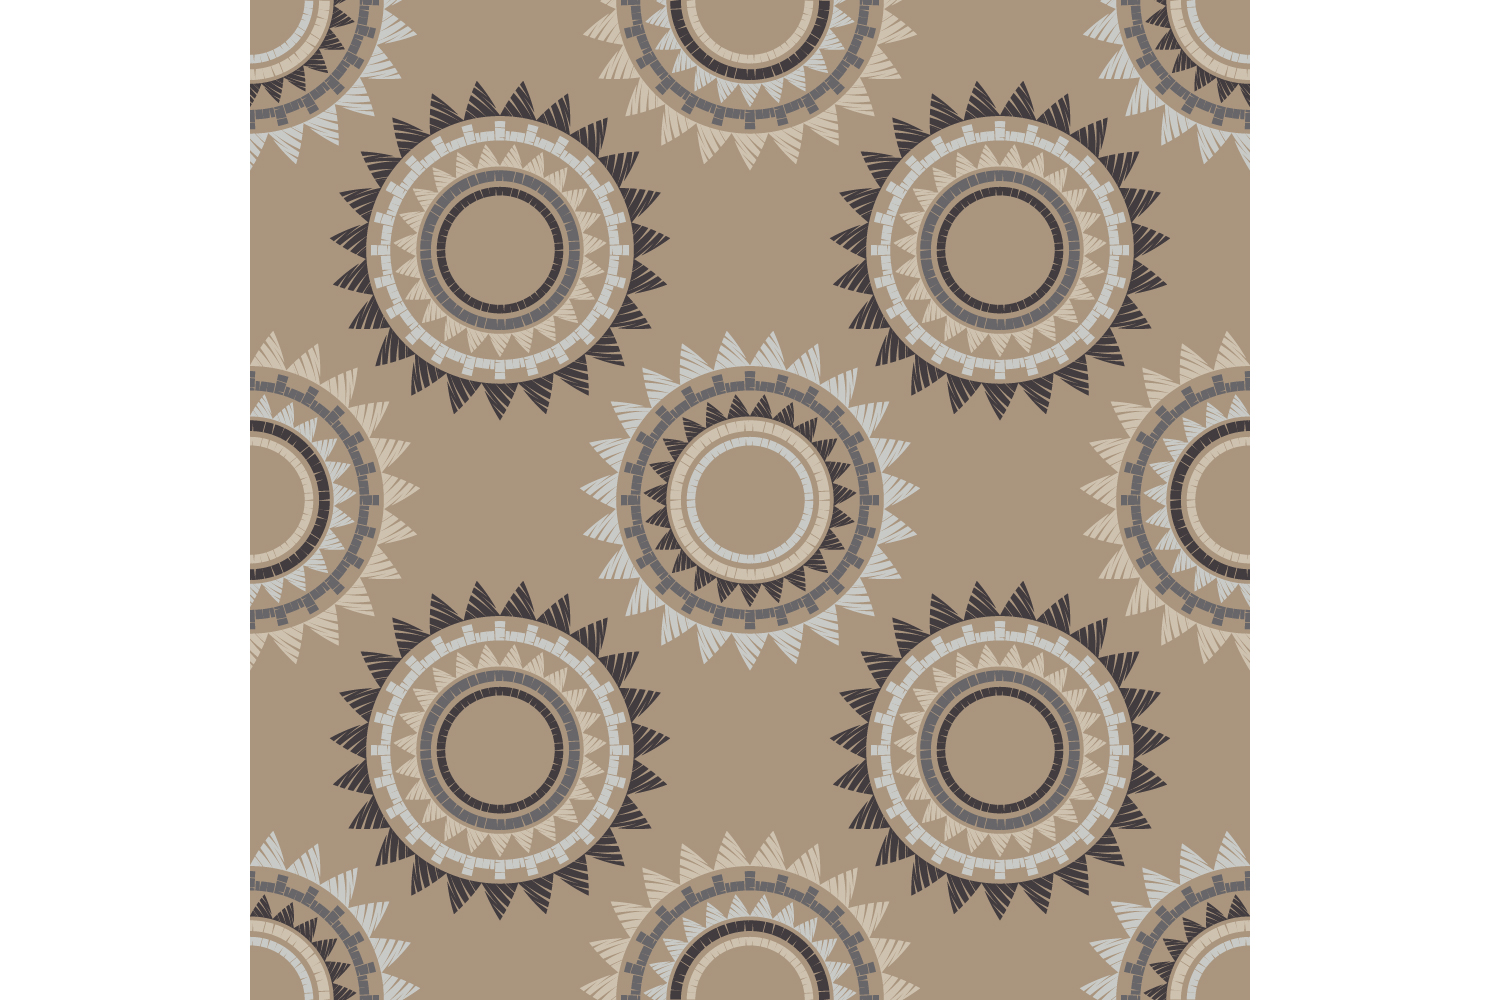 Polka dot ethnic ornament. Set of 10 seamless patterns. example image 5